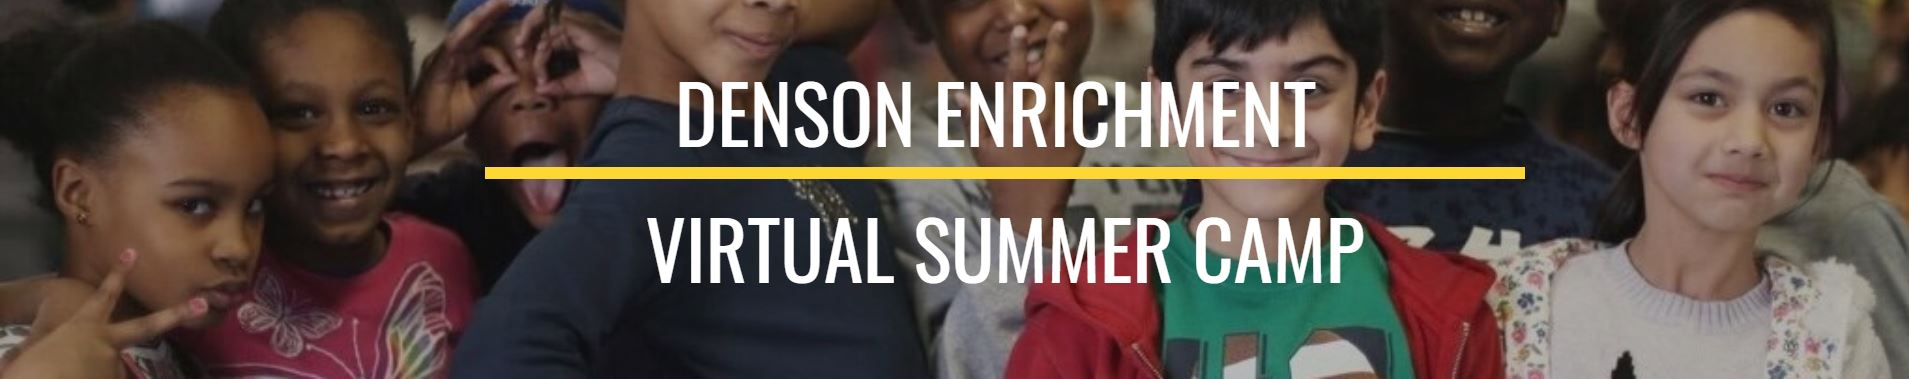 Denson Enrichment Virtual Learning Camp